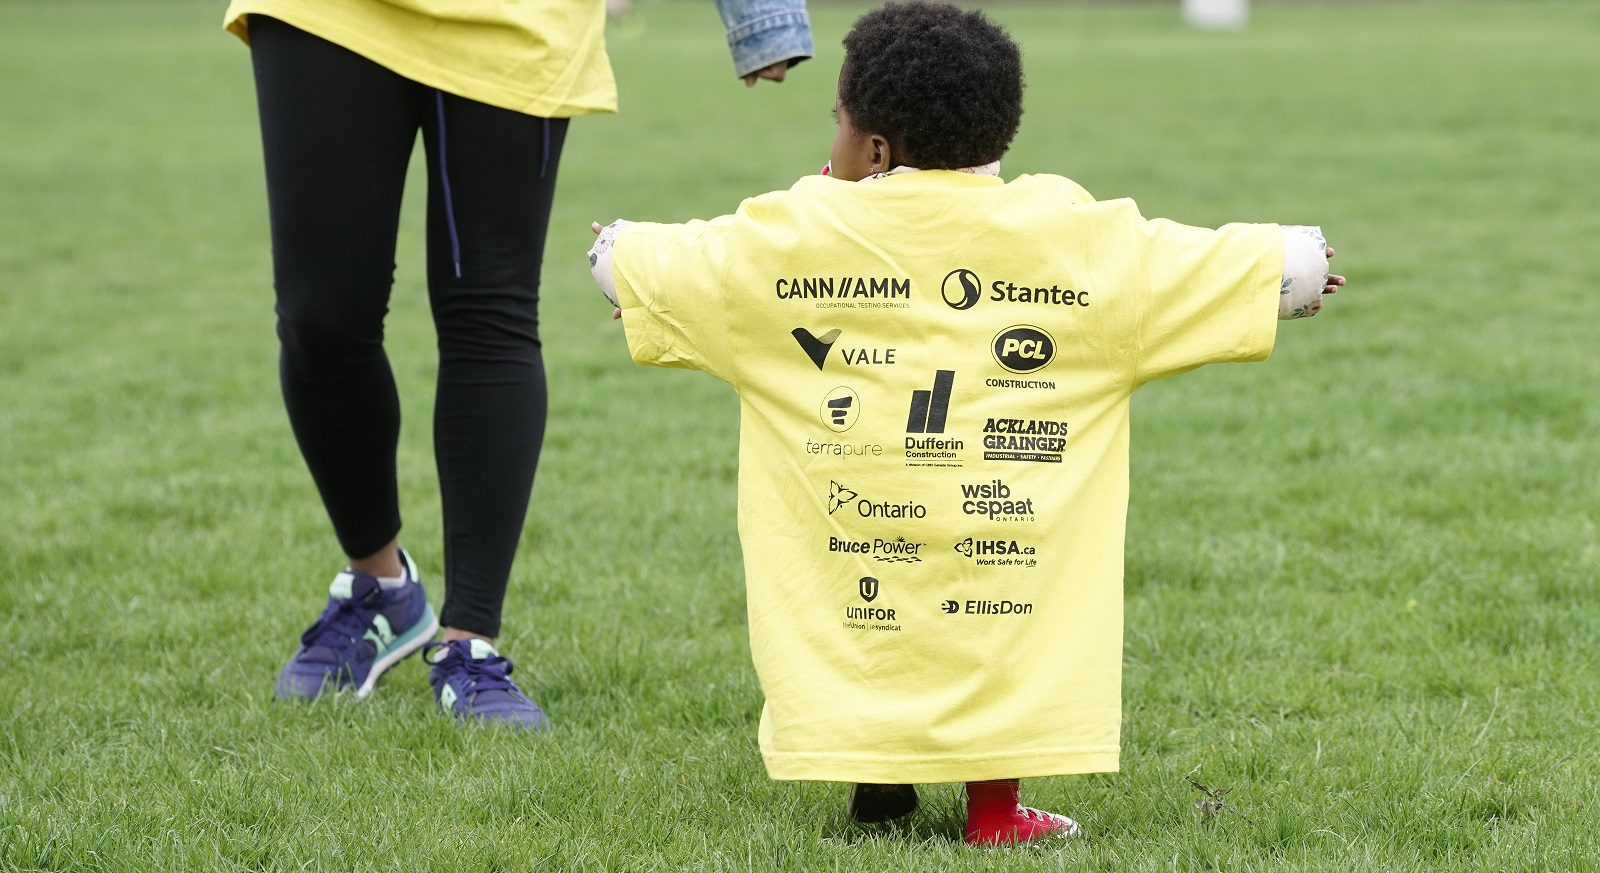 Young boy shows off the back of his oversized t-shirt with names of event sponsors